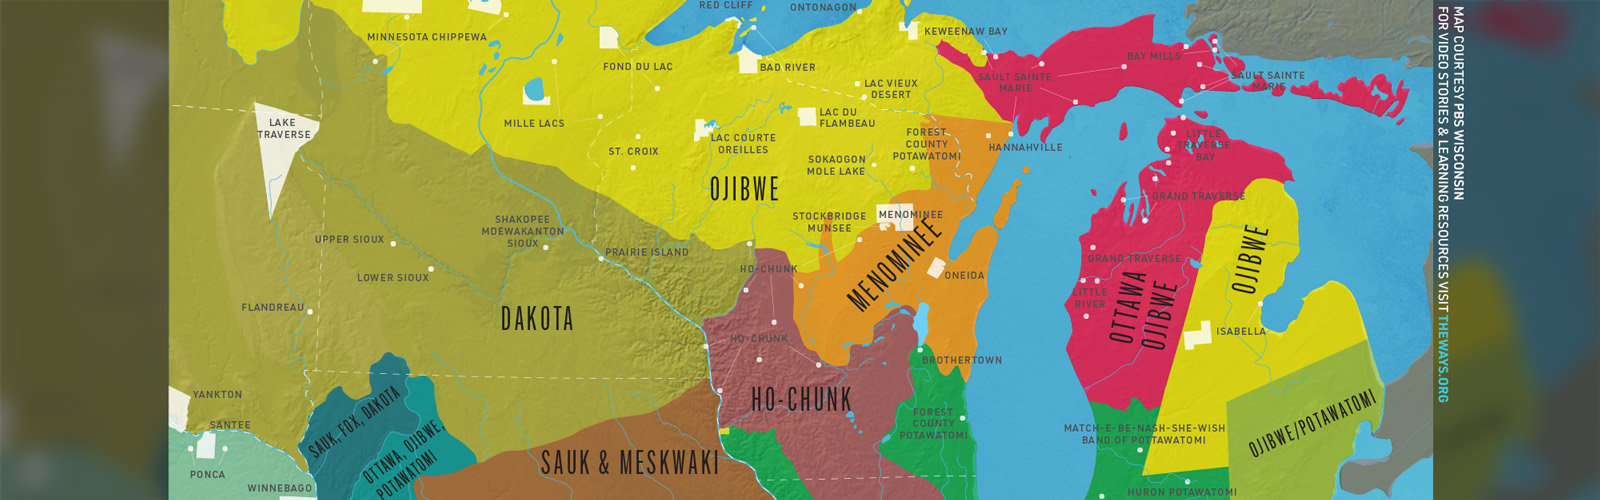 map that shows the extent of tribal lands today and circa 1800 in the Midwest